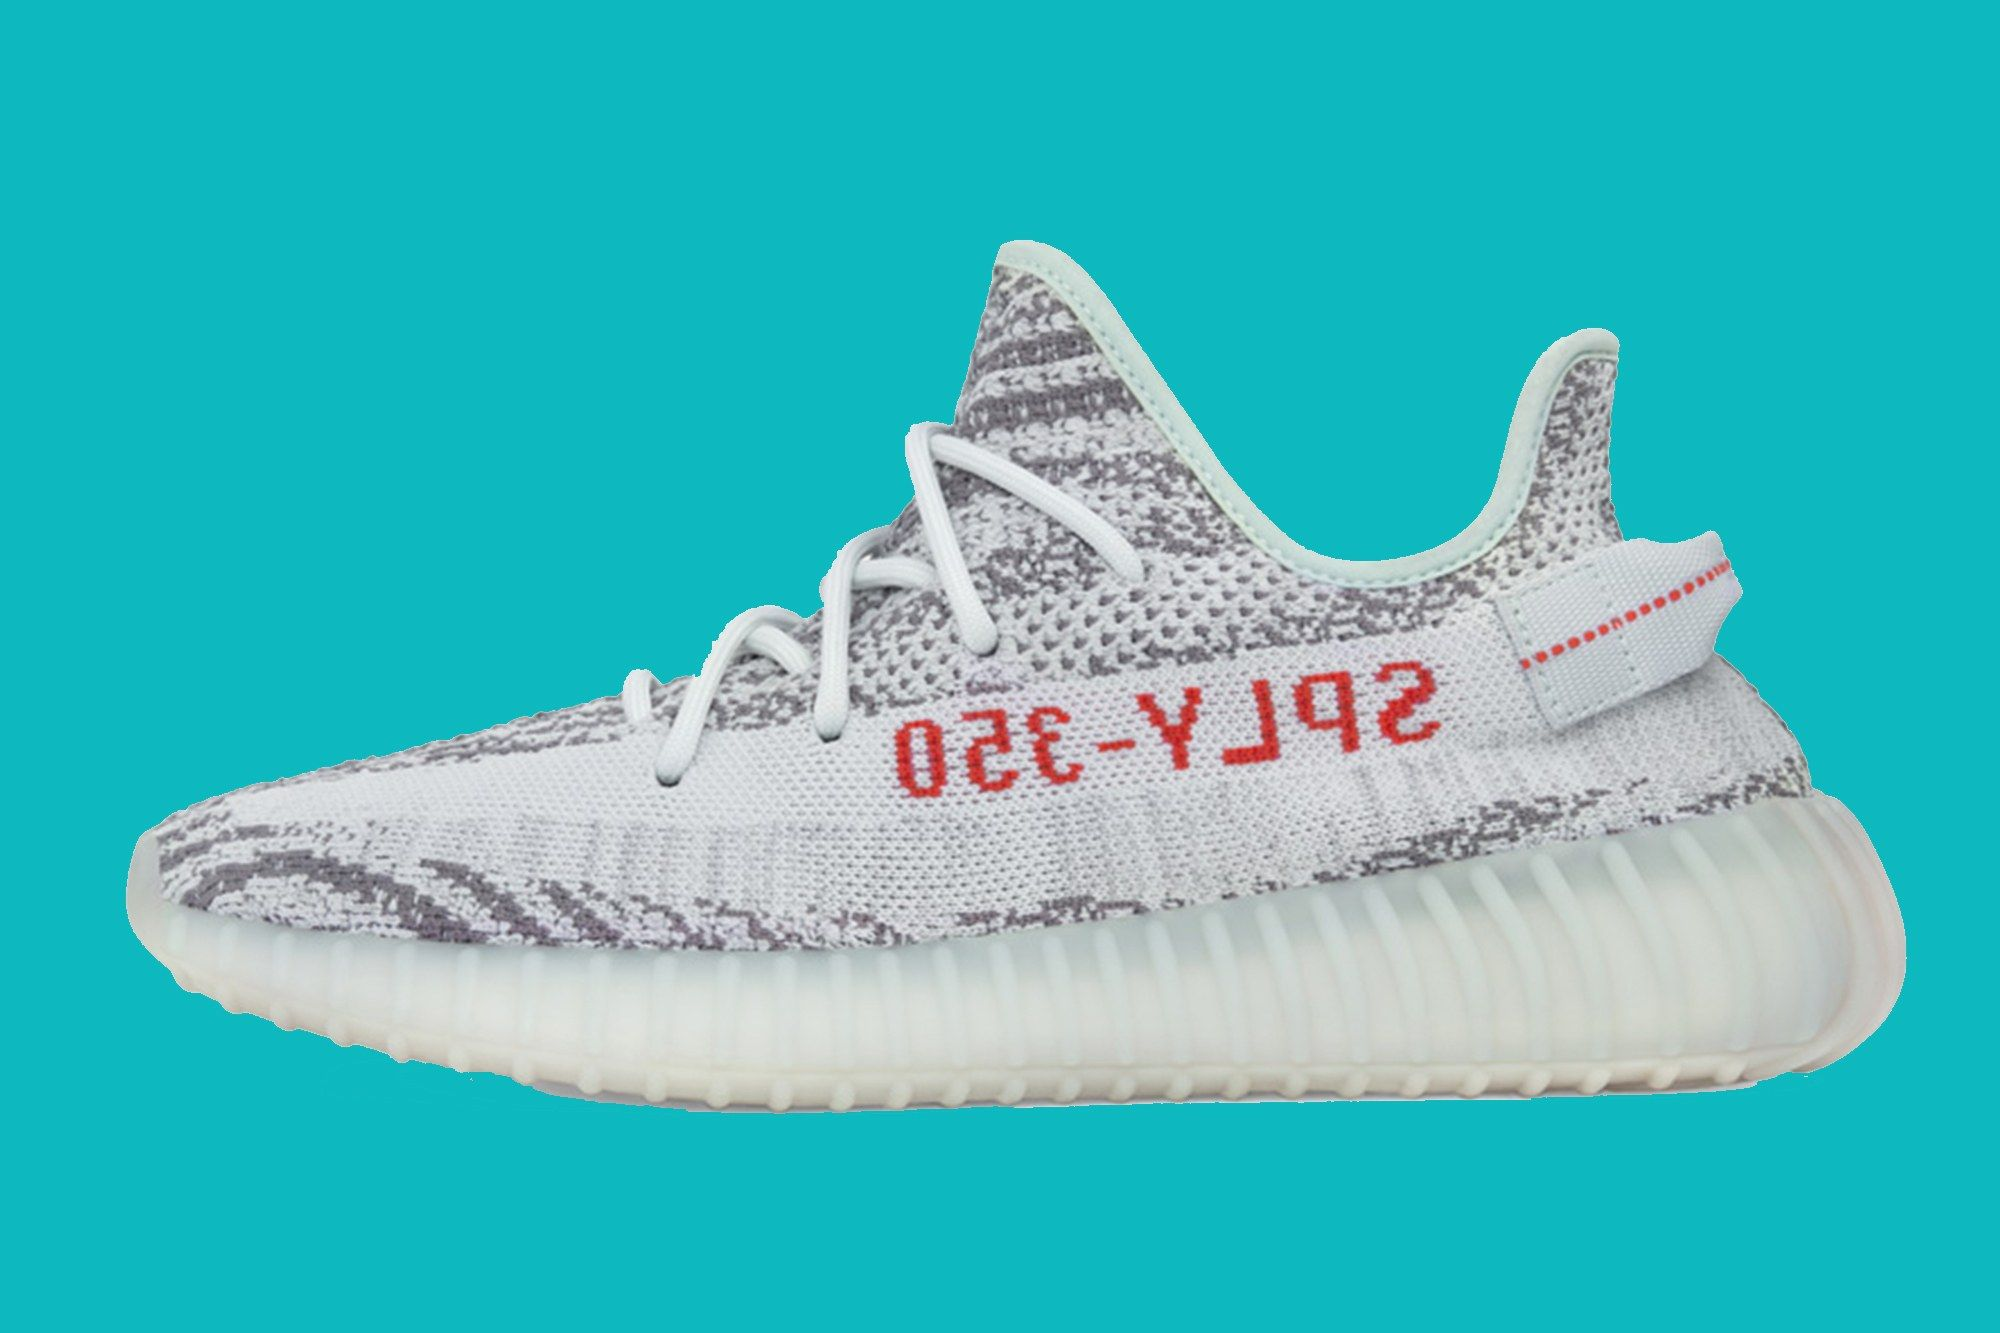 eb7c2b2d1 Your Yeezy Boost 350 V2 Blue Tint Buying Guide The Yeezy Boost 350 V2 Blue  Tint